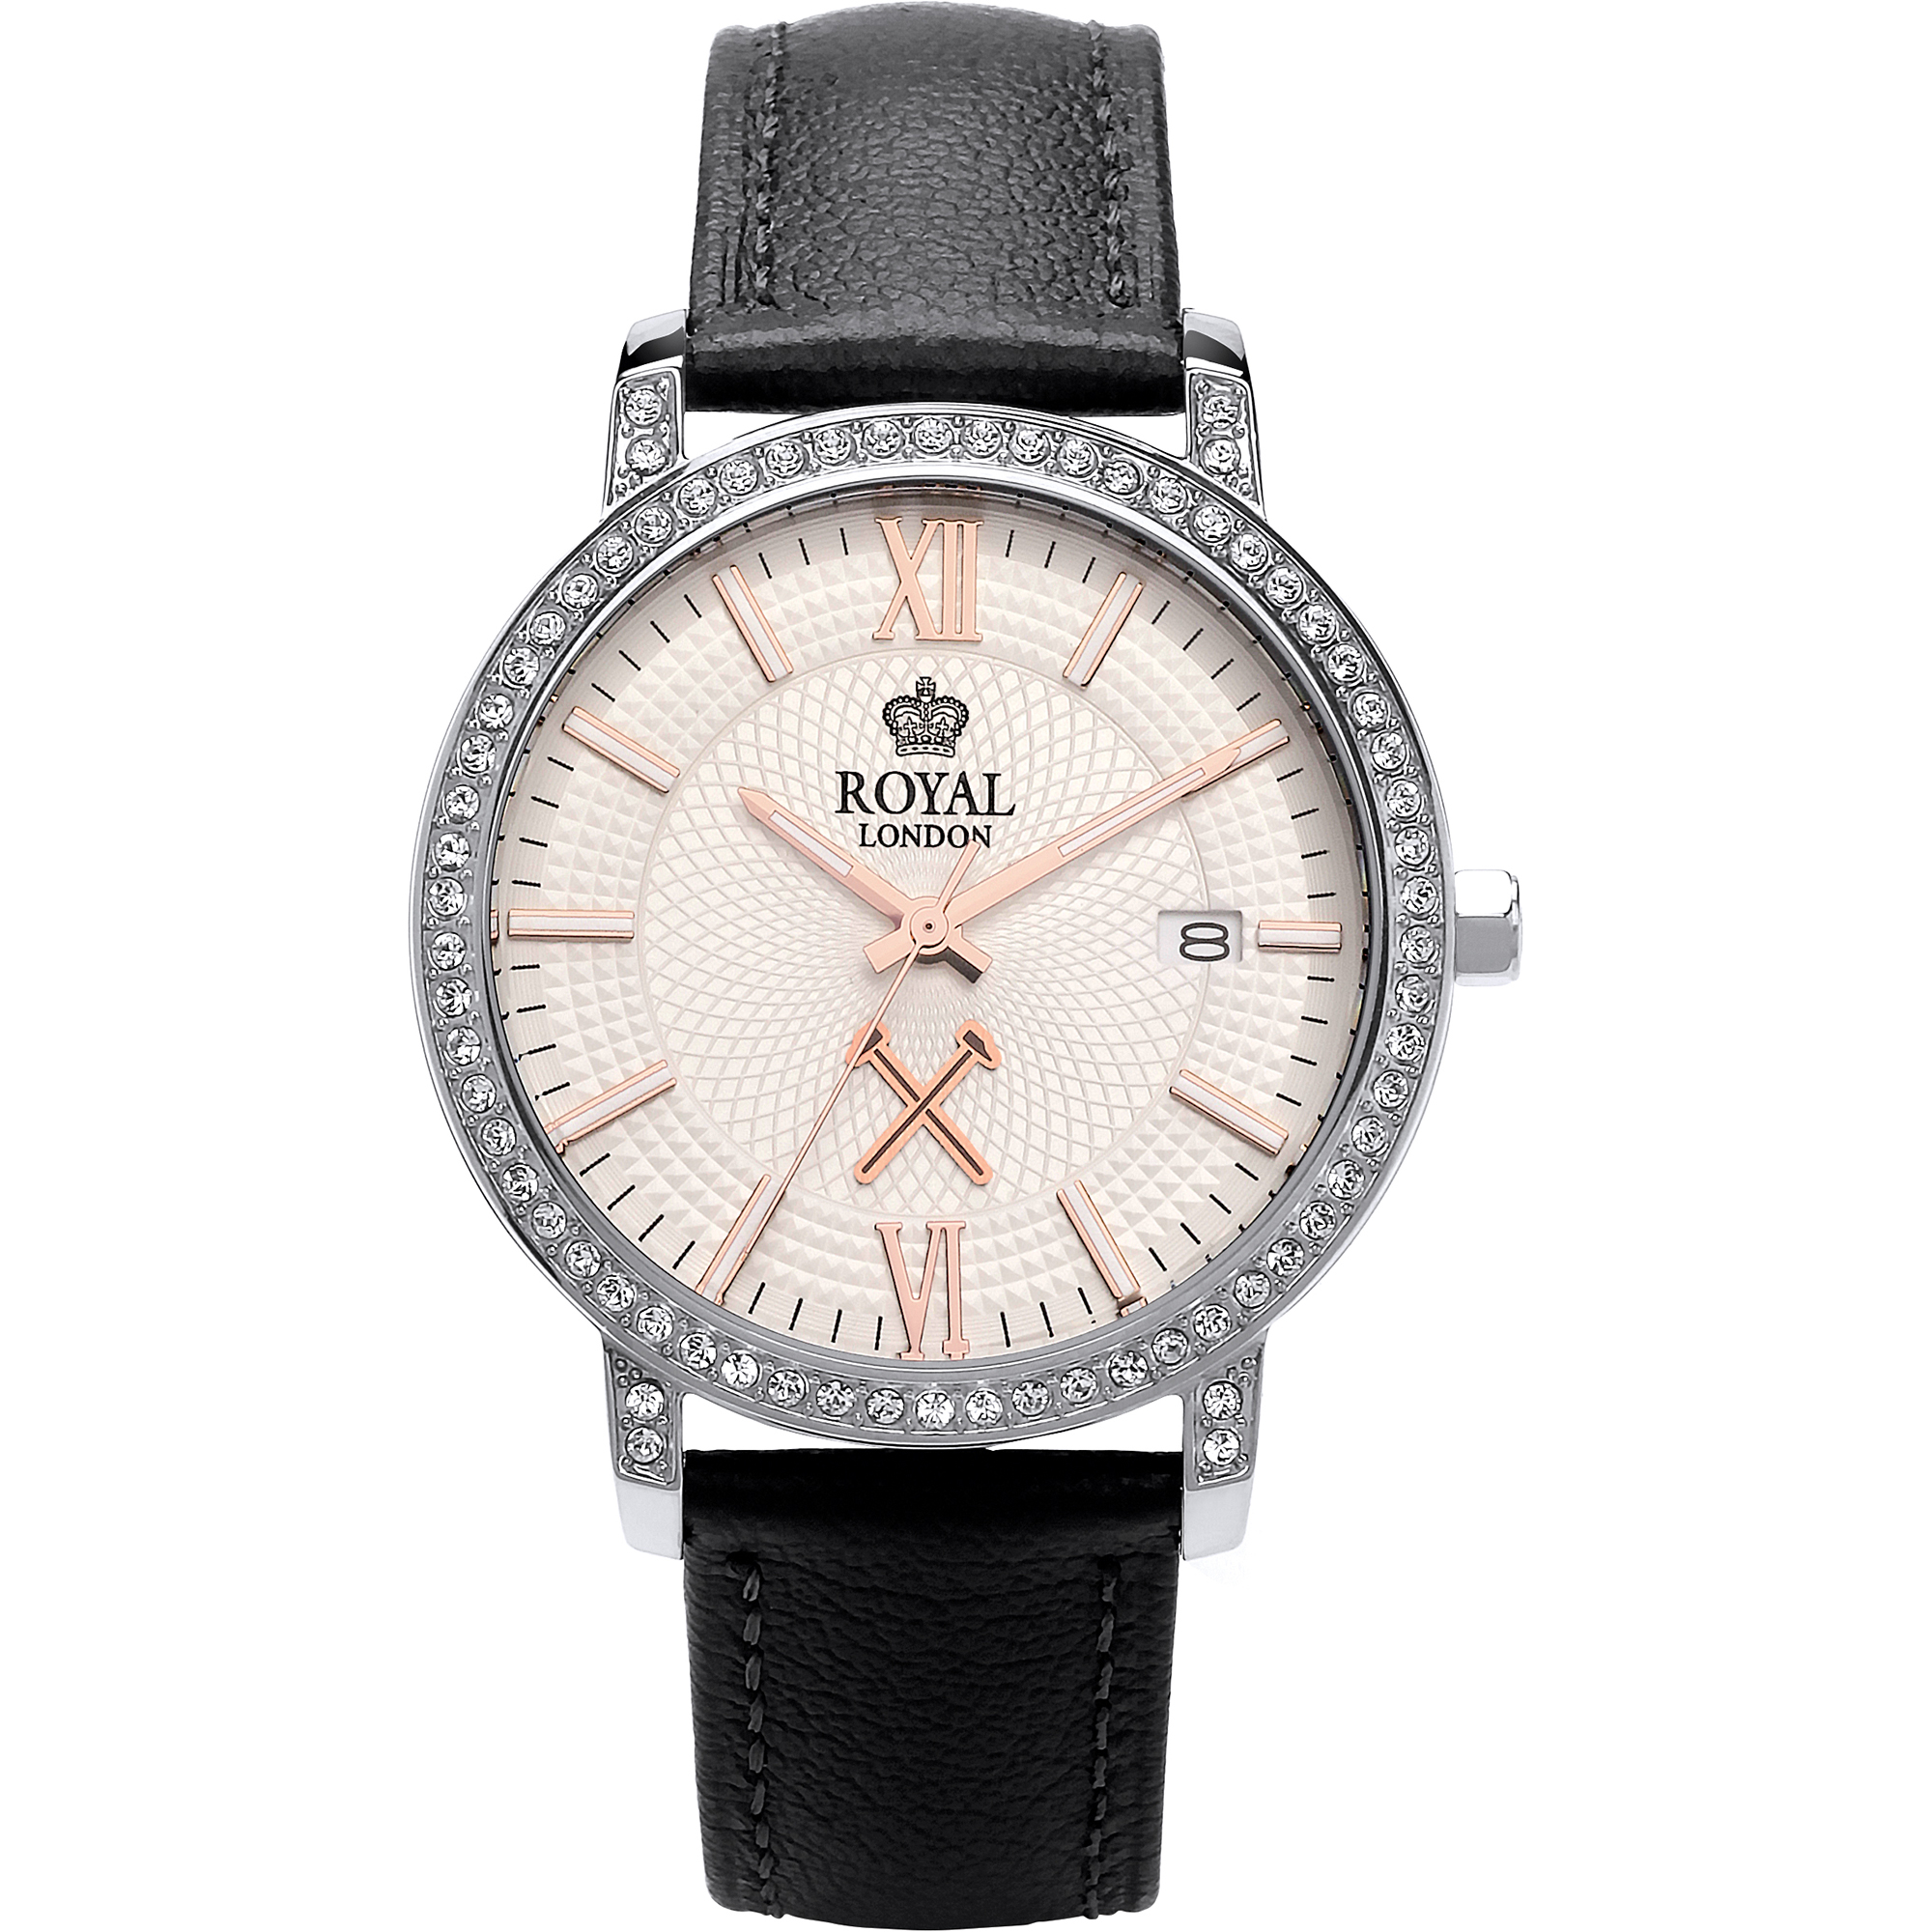 ROYAL LONDON LADIES 11 LEATHER STRAP WATCH